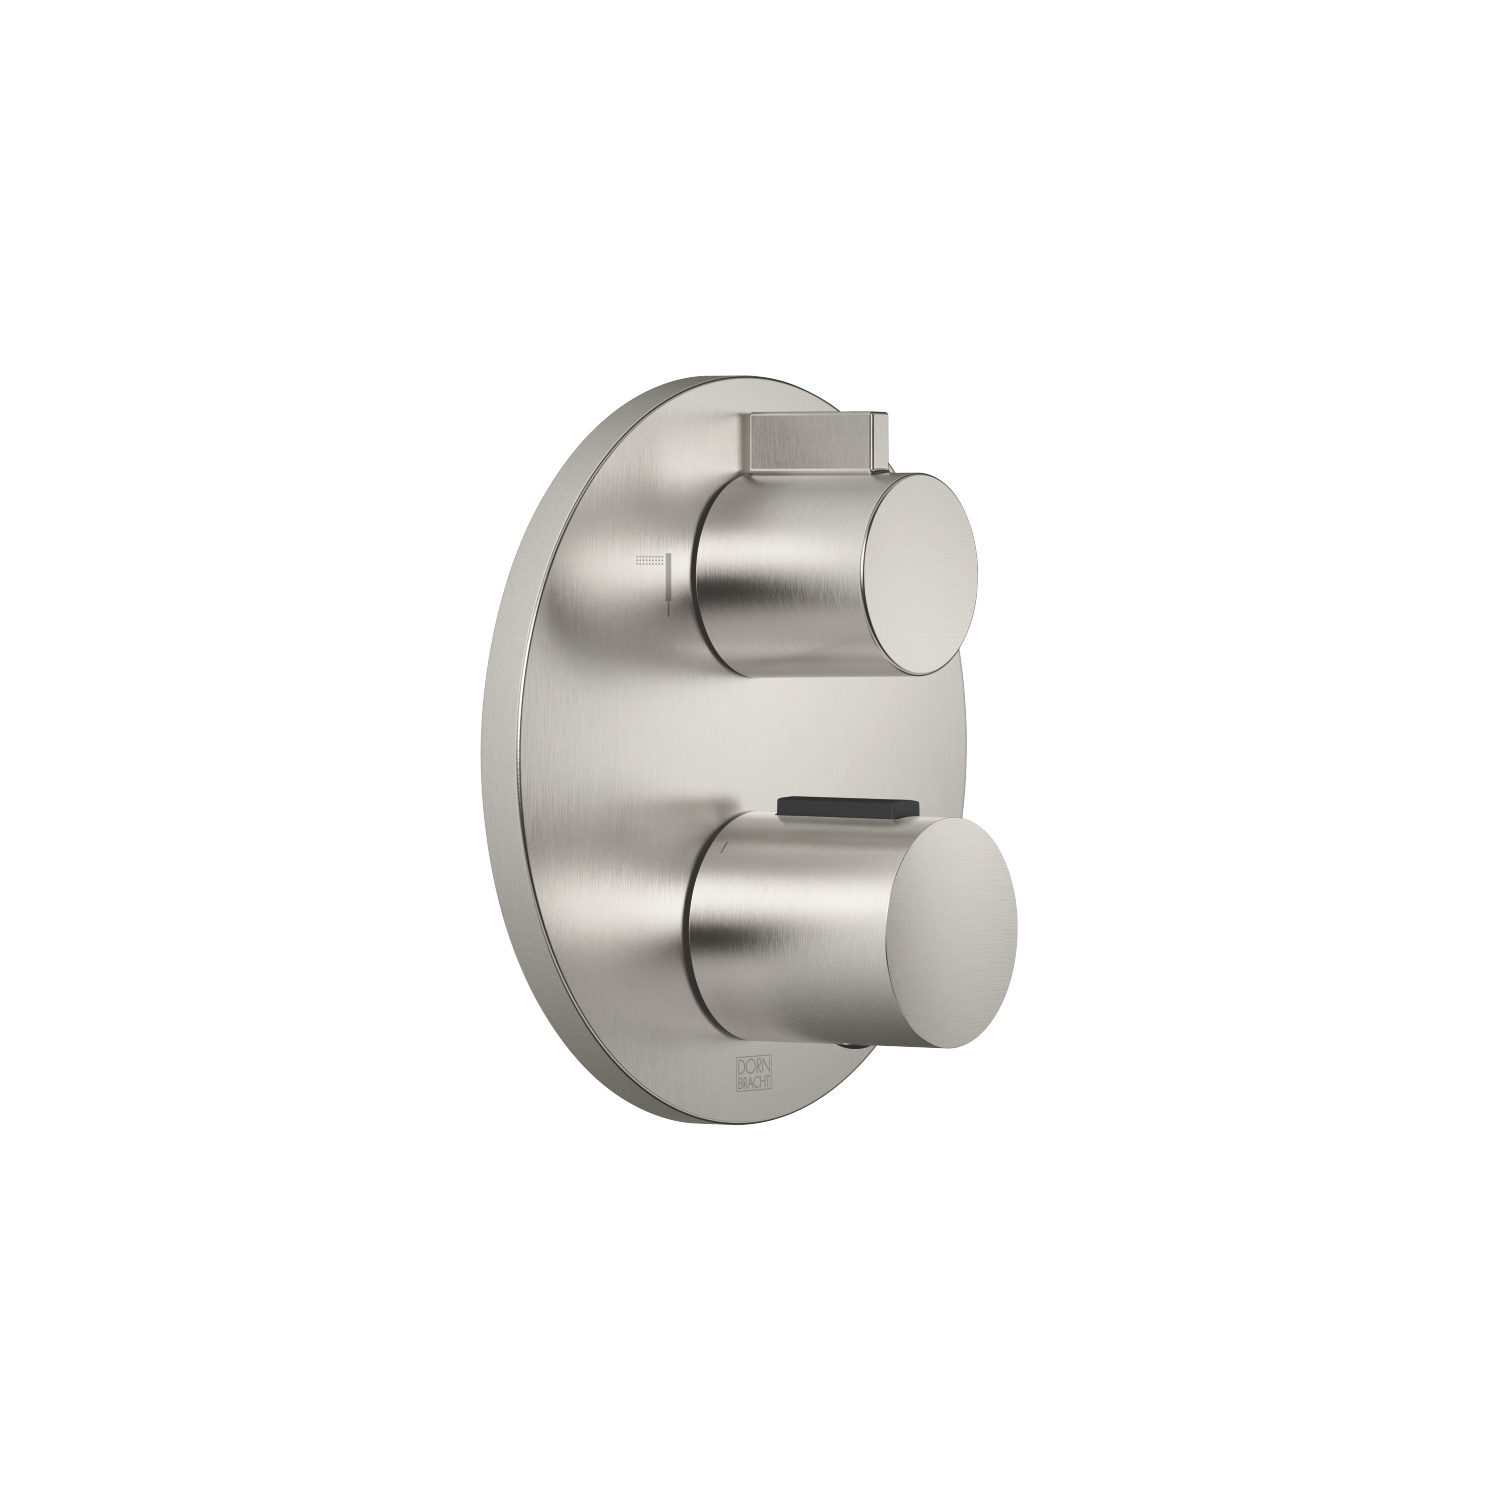 Concealed thermostat with two function volume control - platinum matt